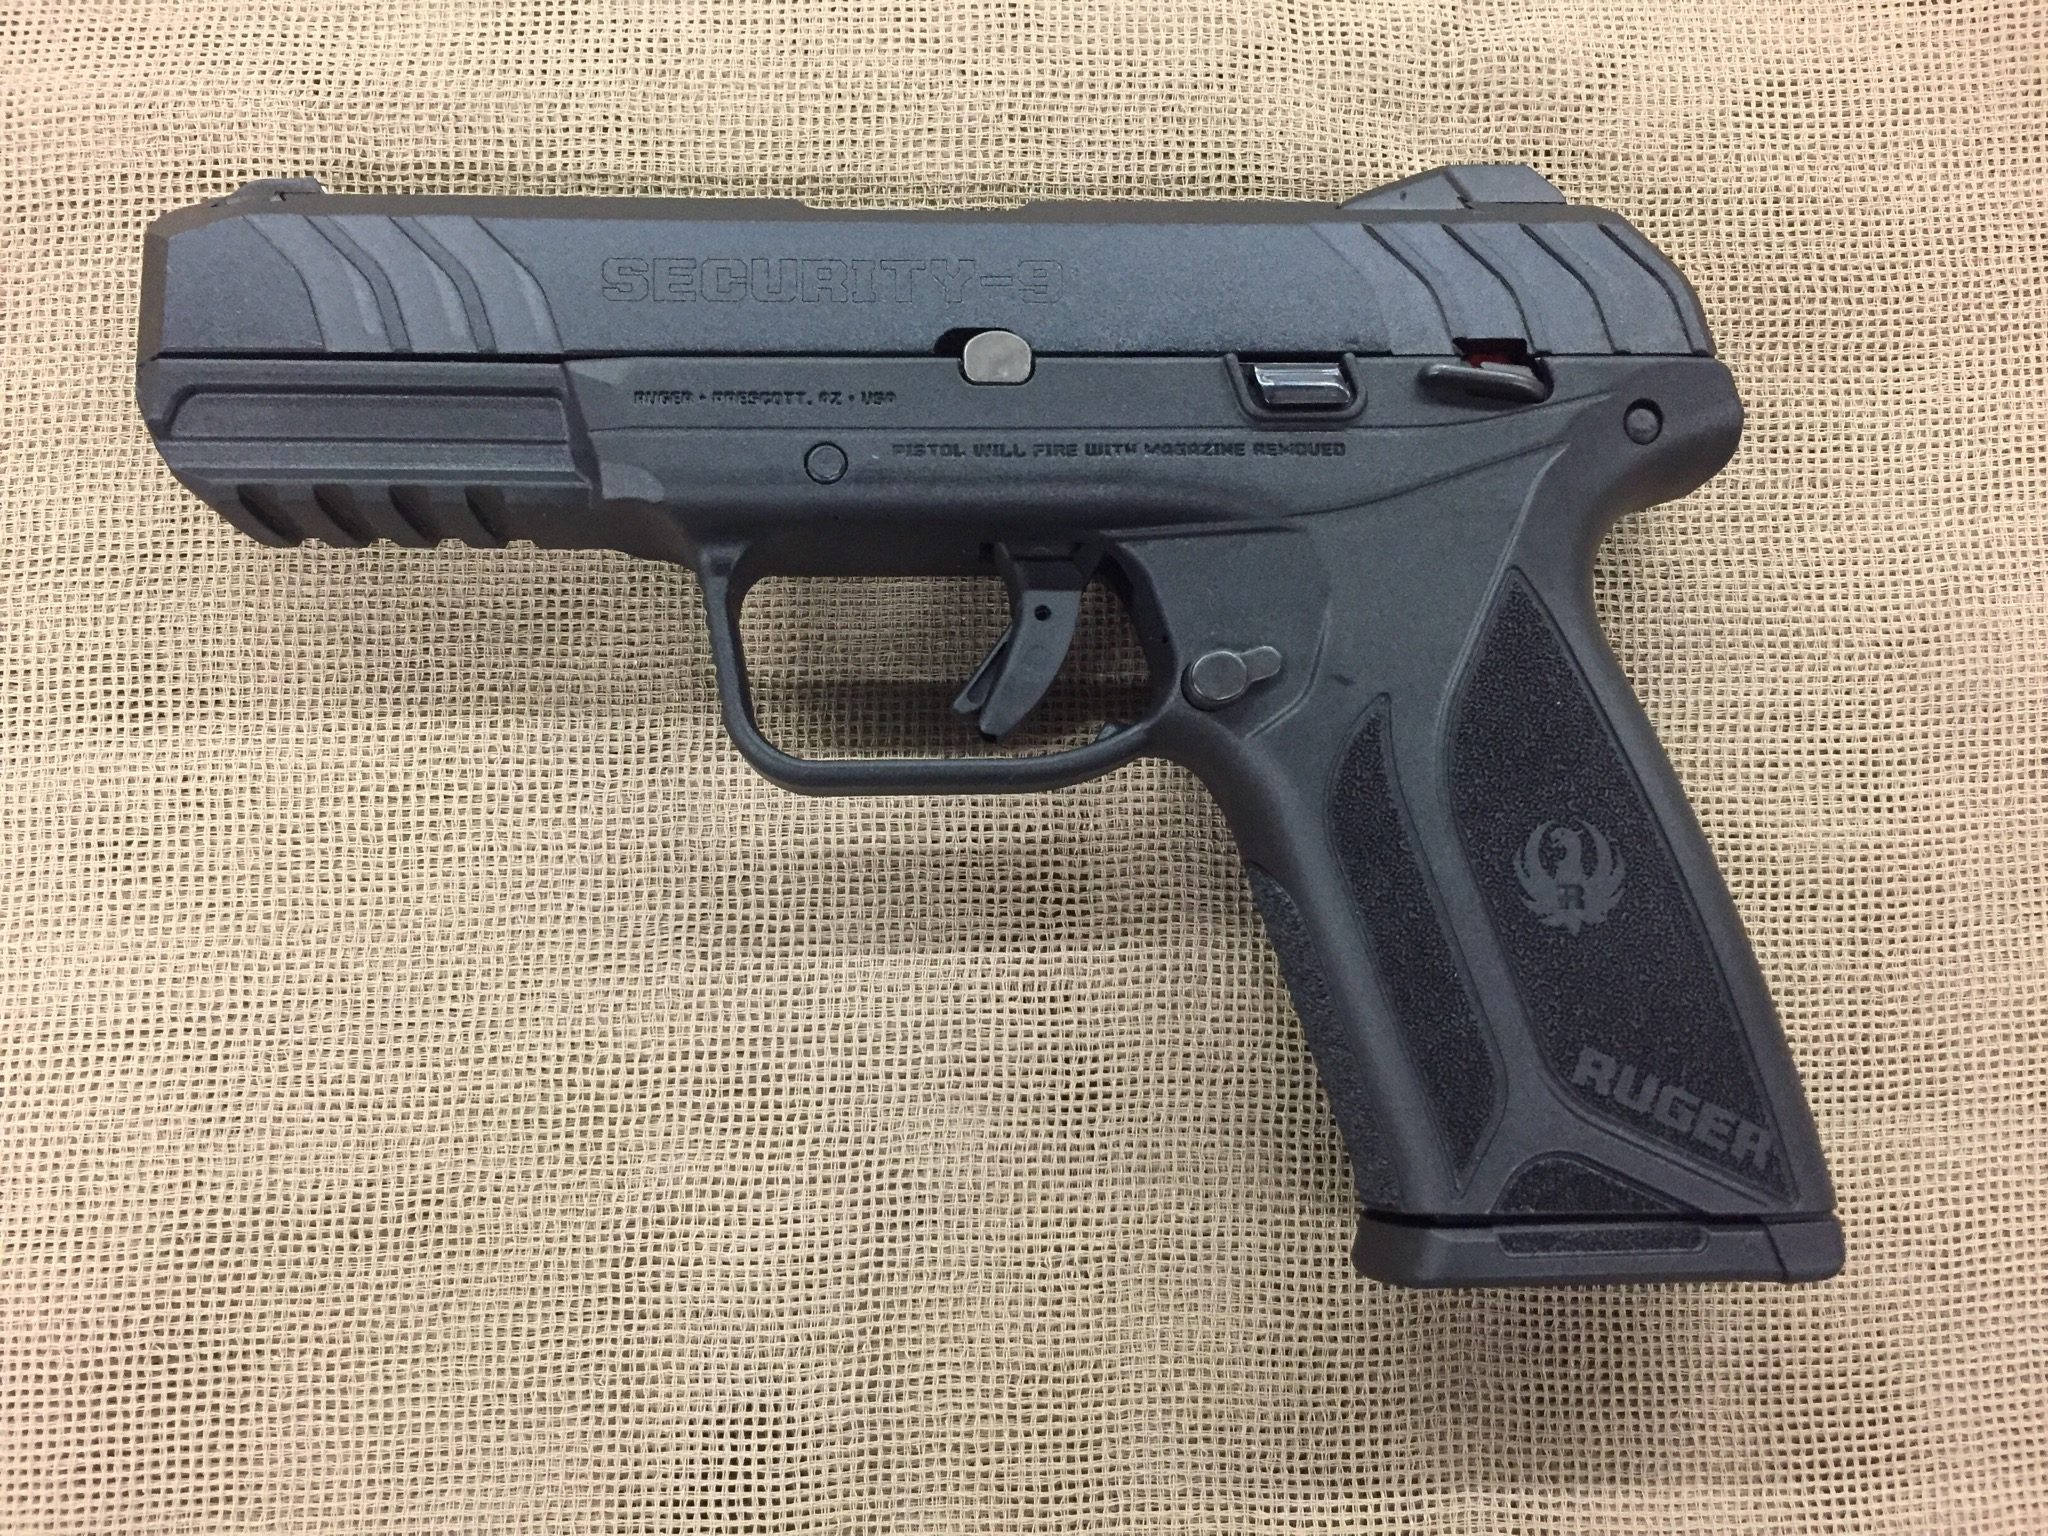 Ruger Security-9 9mm semi auto 15+1 capacity